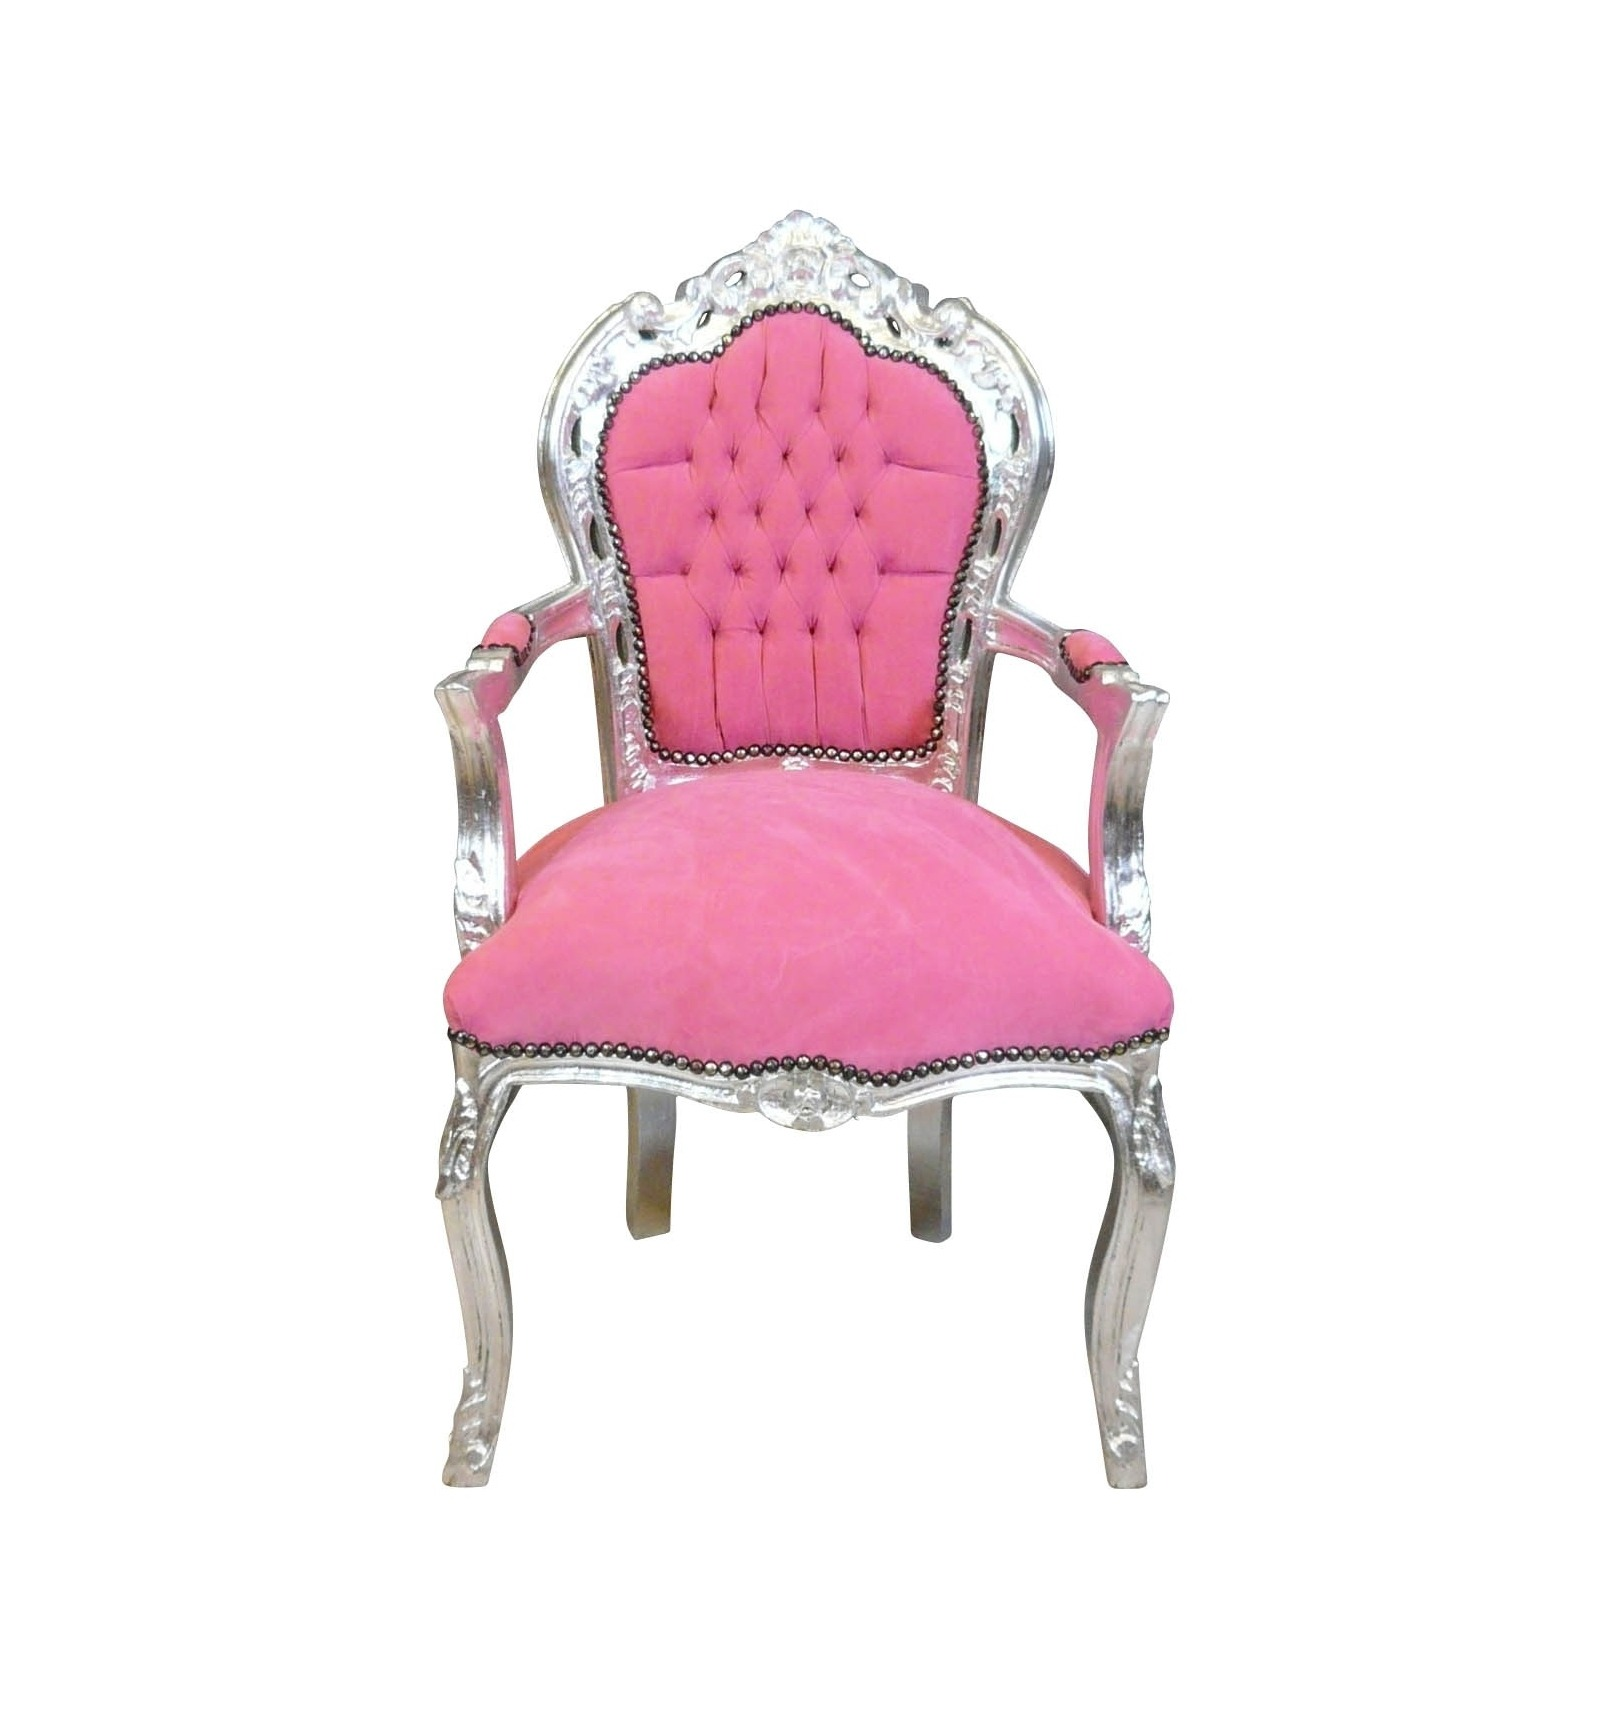 fauteuil baroque rose et argent mobilier baroque pas cher. Black Bedroom Furniture Sets. Home Design Ideas